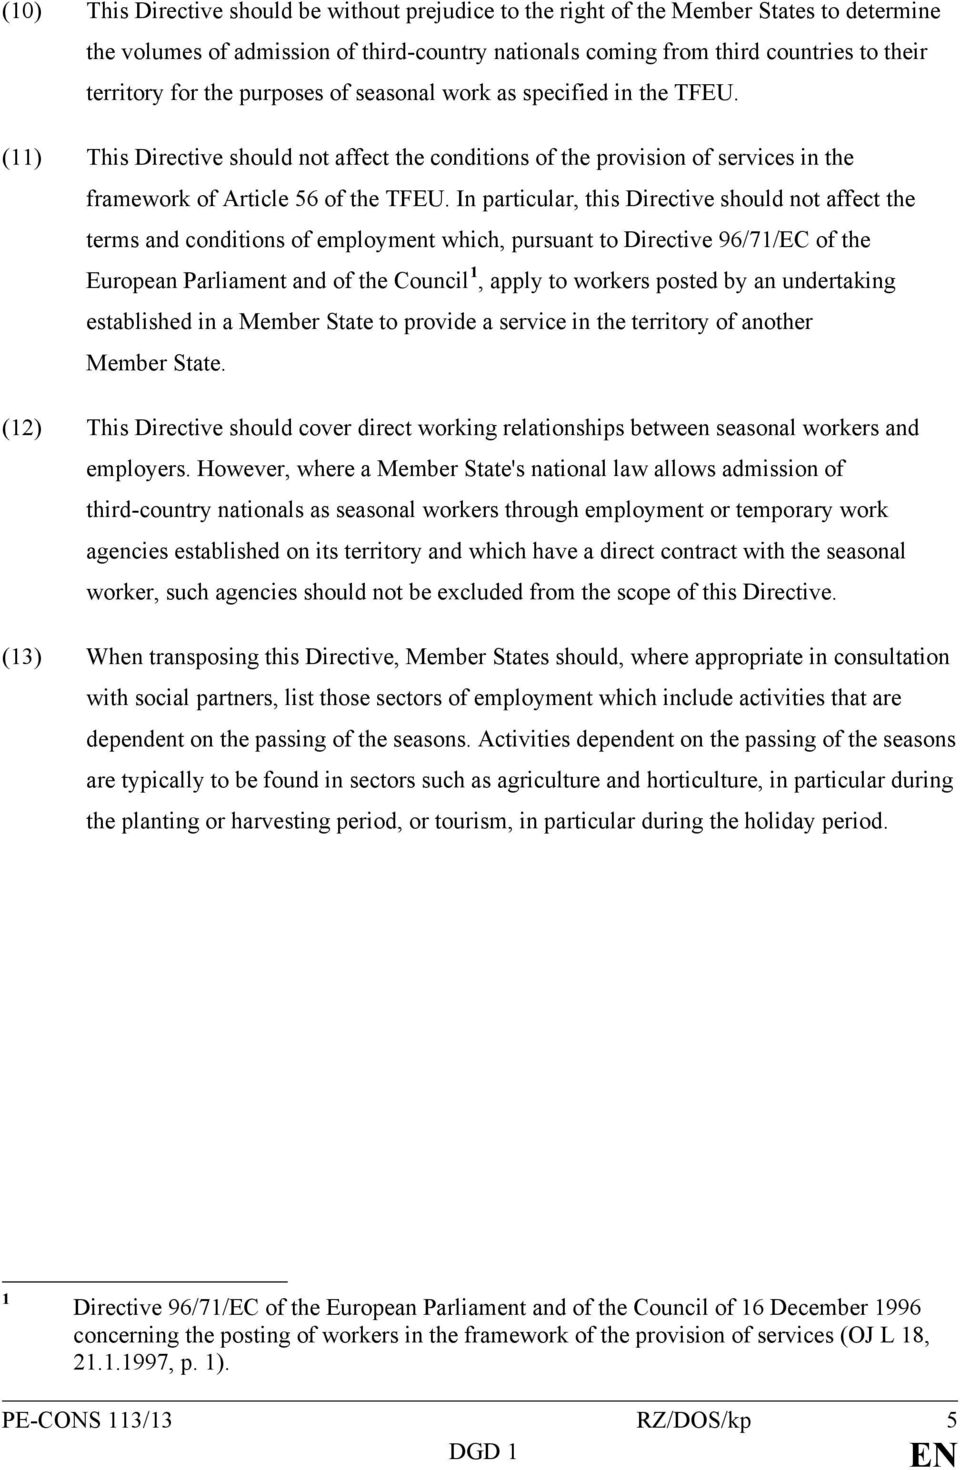 In particular, this Directive should not affect the terms and conditions of employment which, pursuant to Directive 96/71/EC of the European Parliament and of the Council 1, apply to workers posted